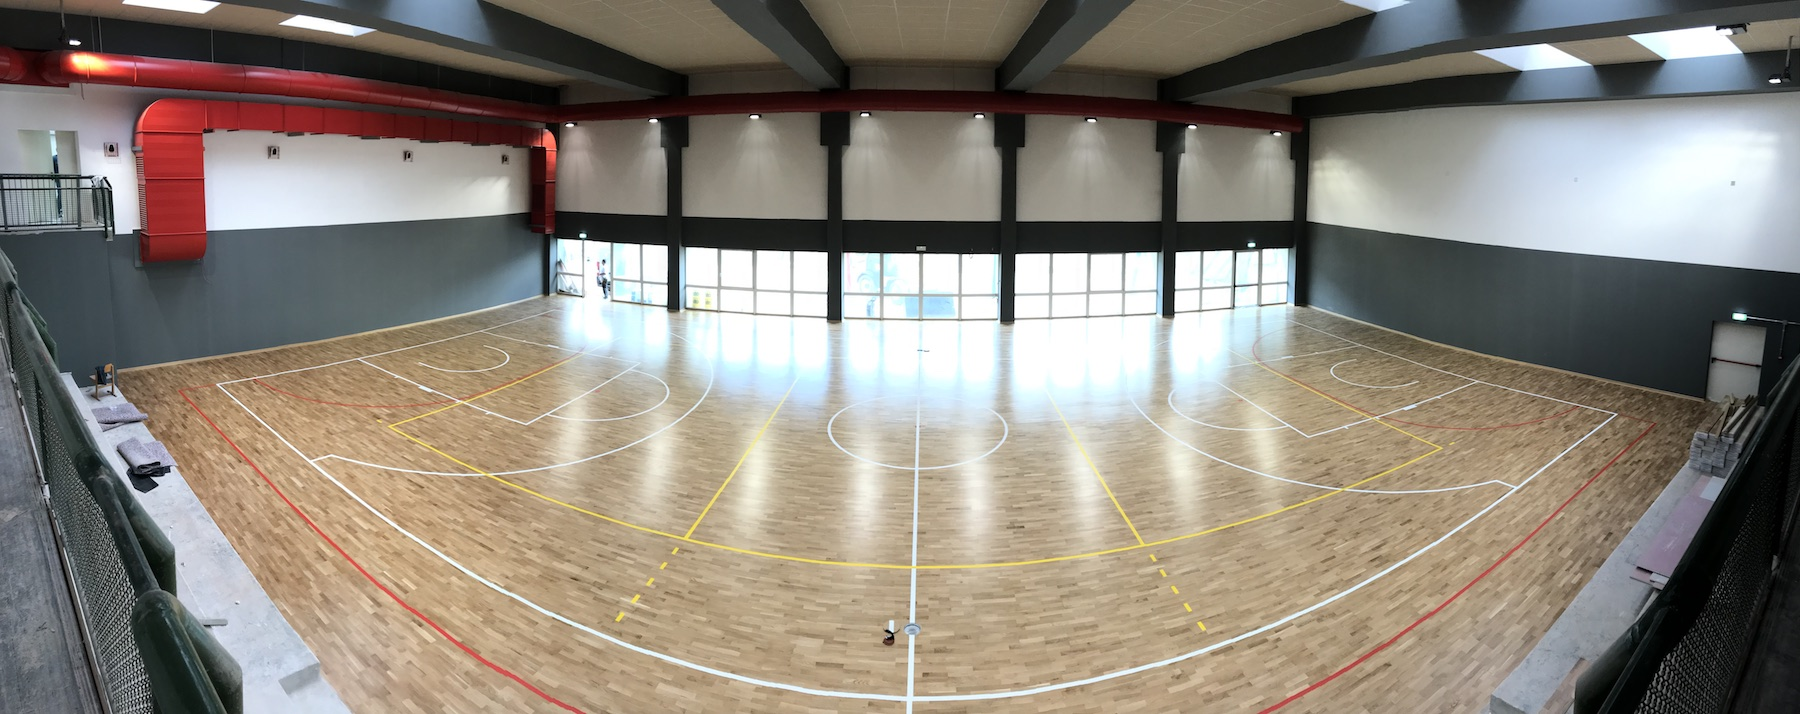 Playwood 4 in oak essence in the Trentino gym